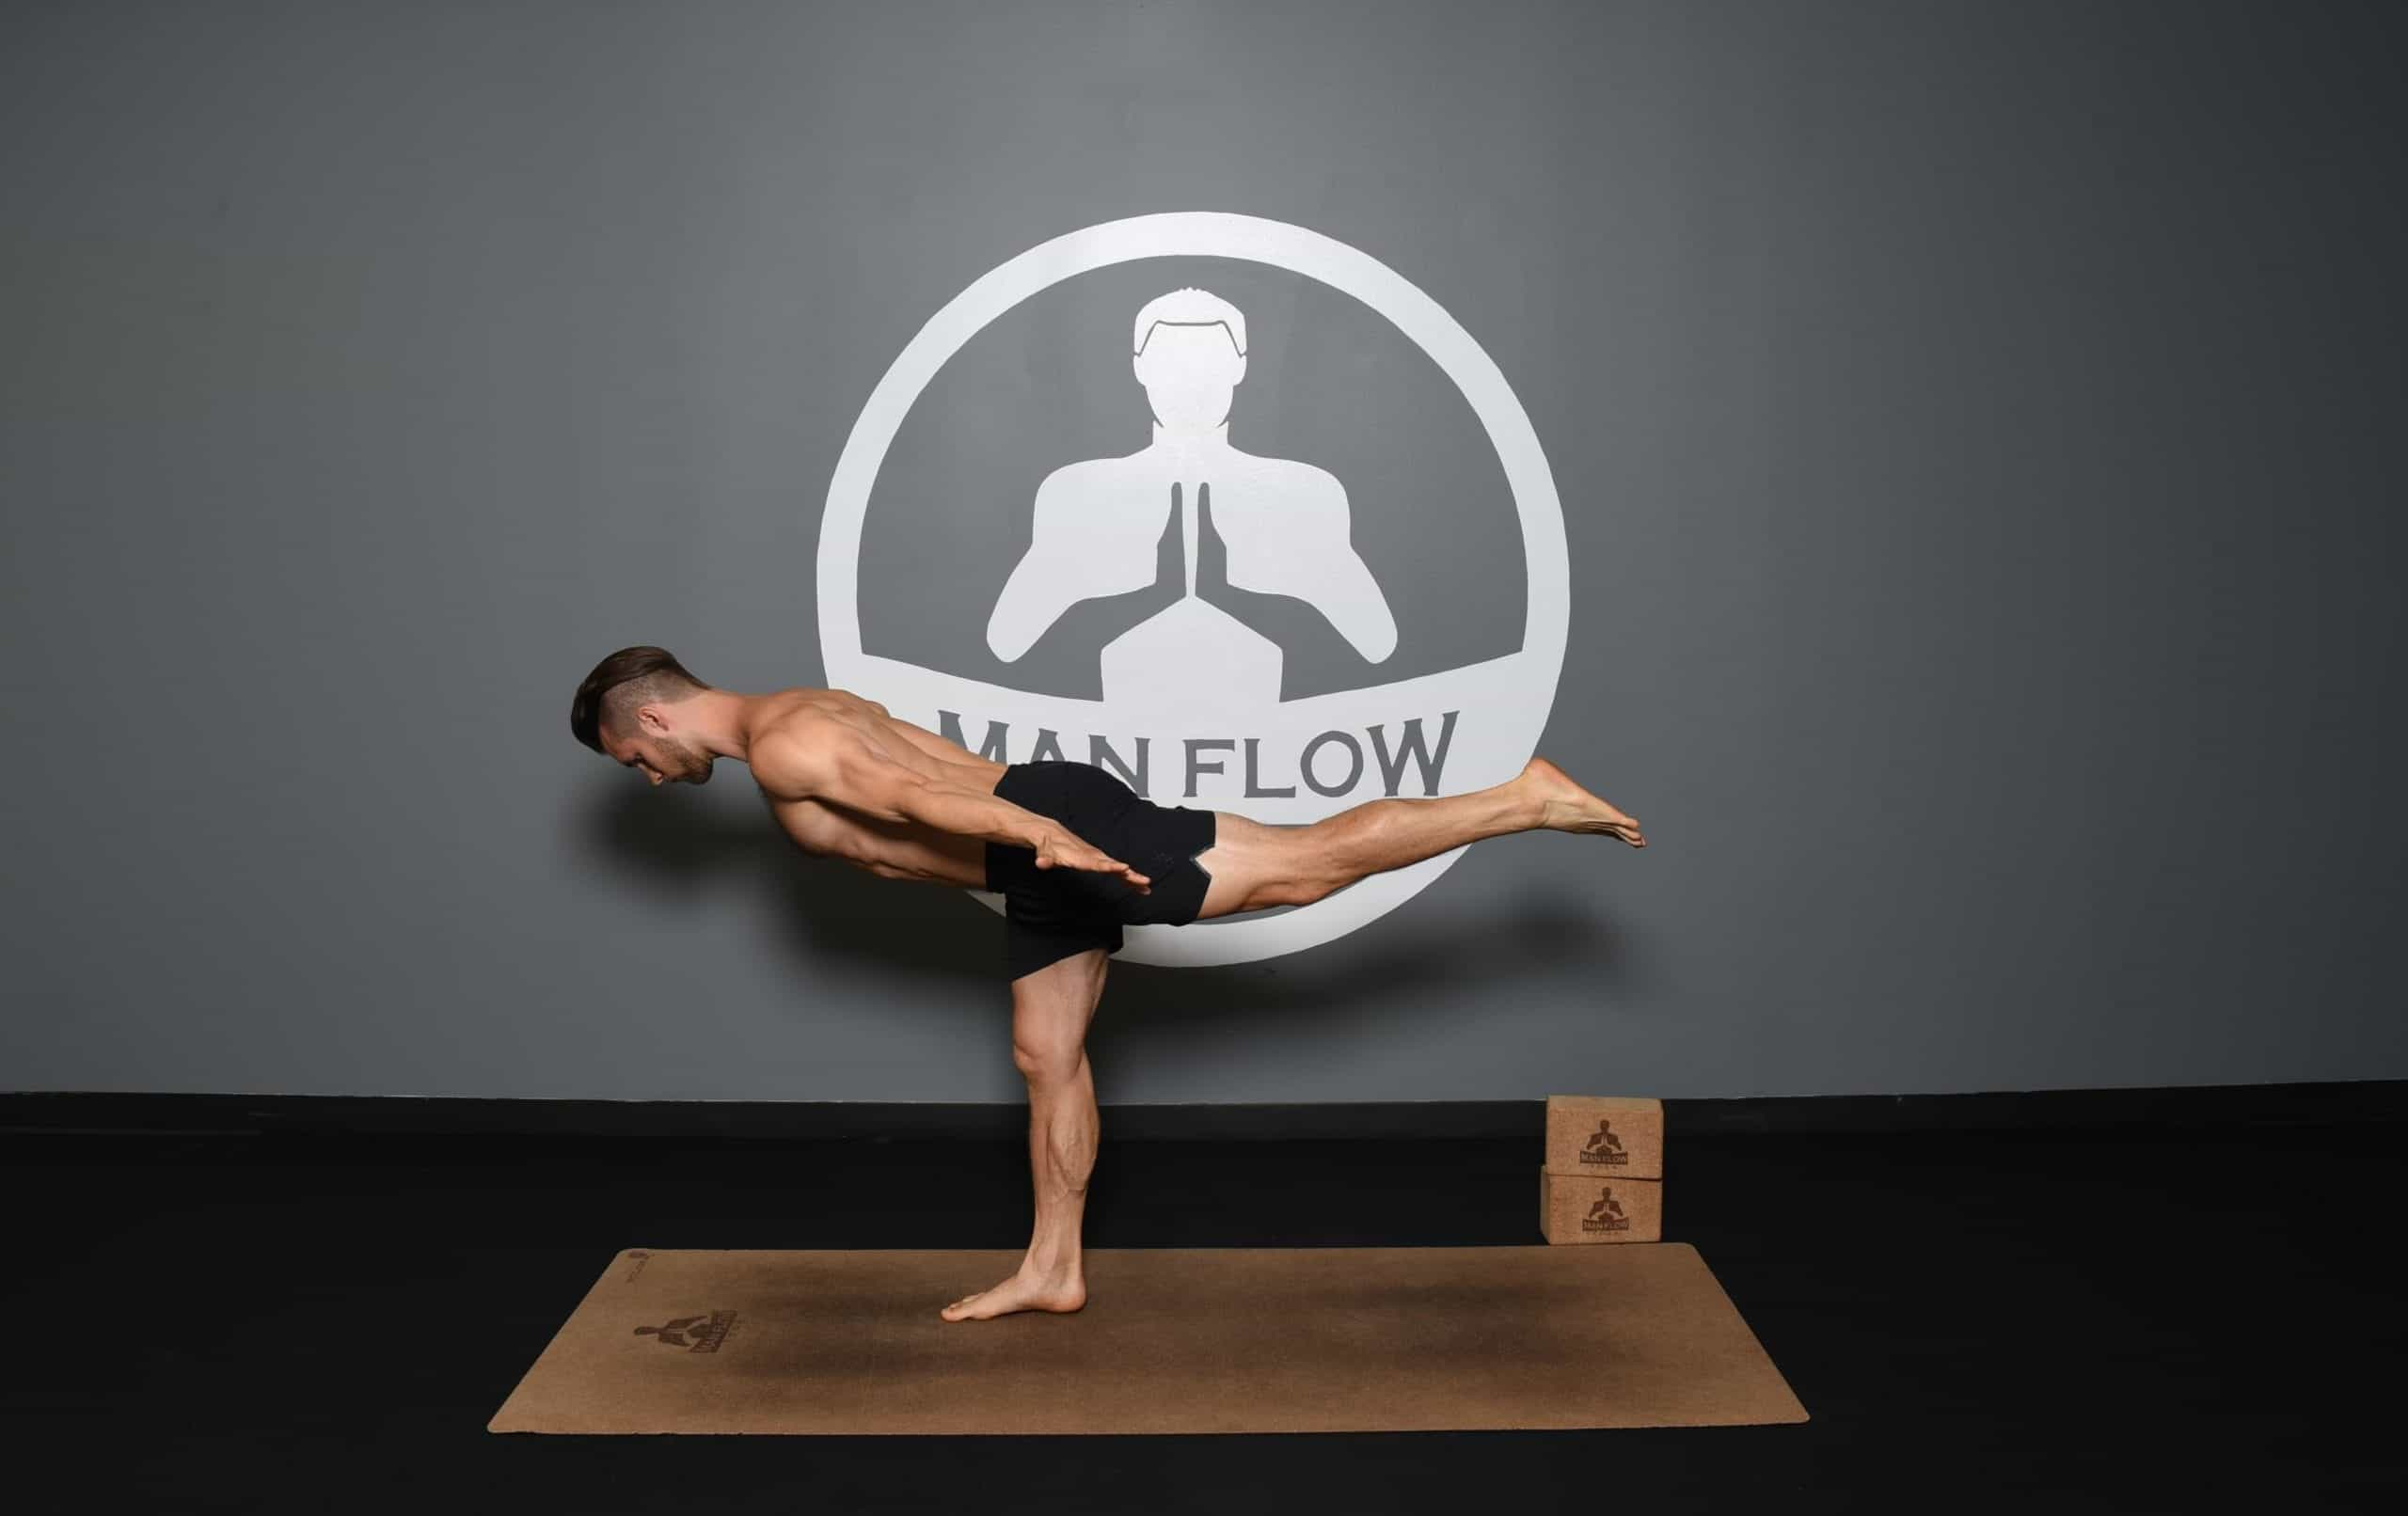 Yoga is great for developing balance - Warrior 3 Pose as an example